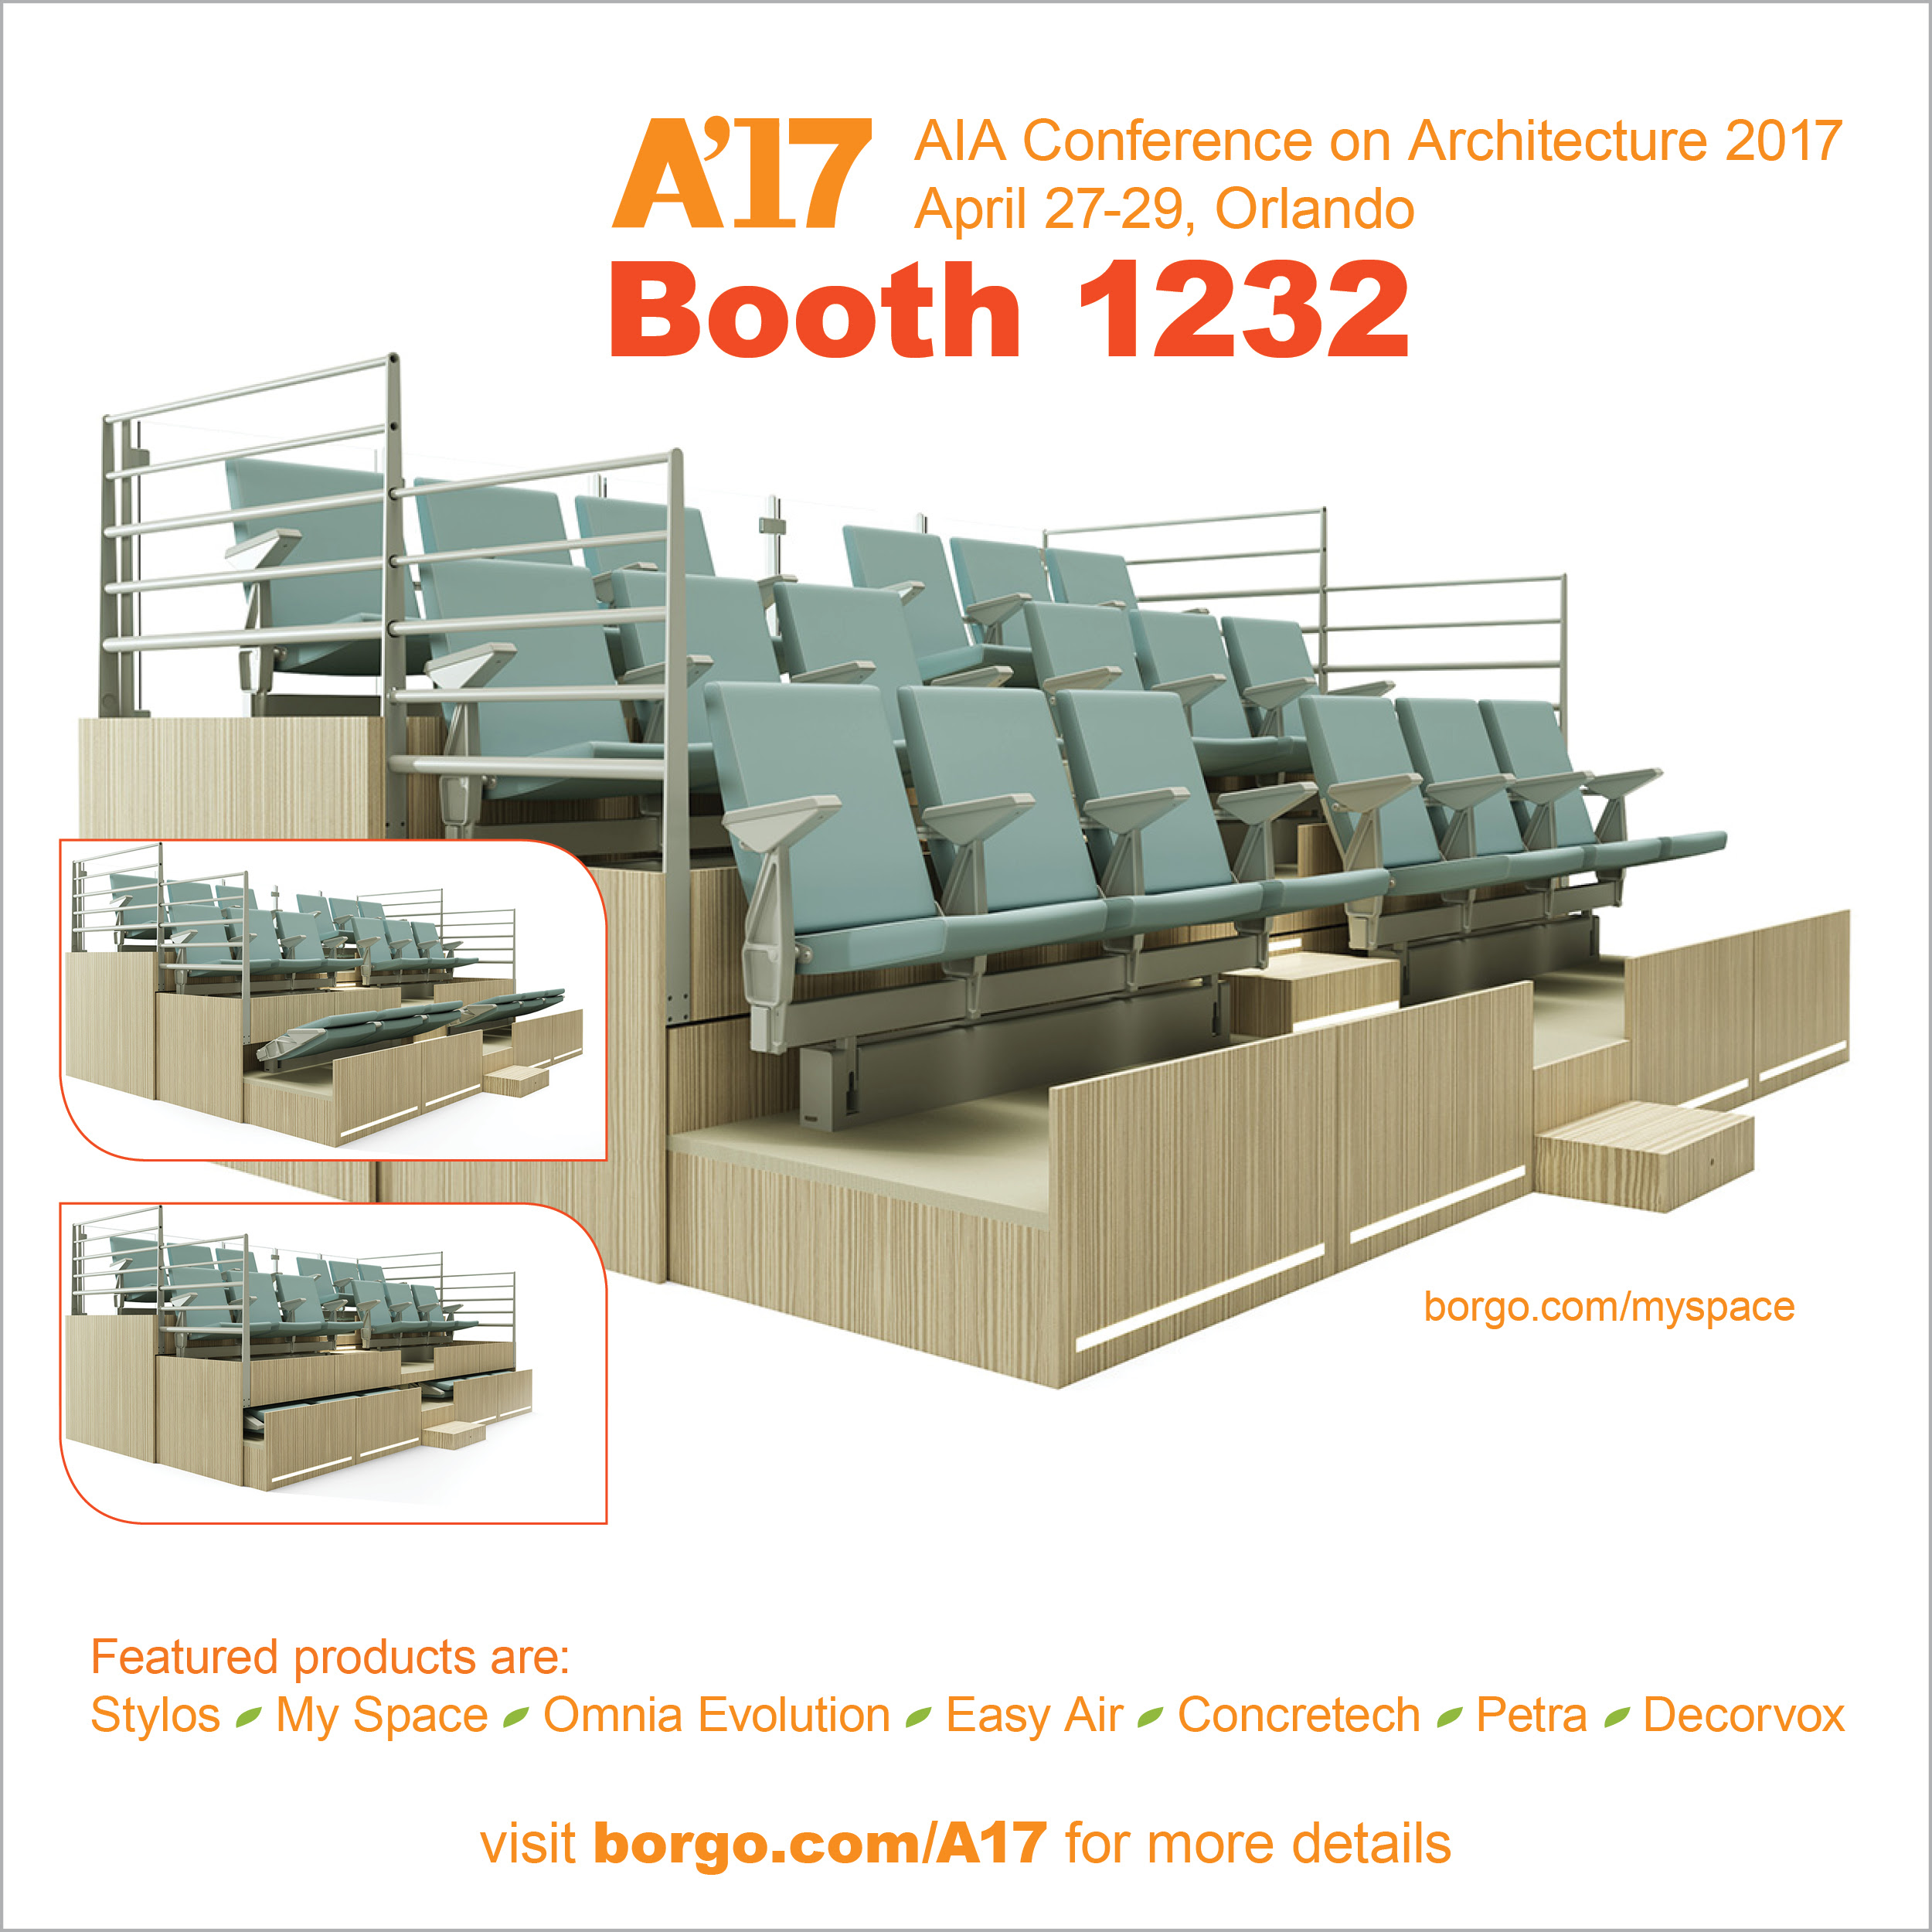 A'17 AIA Conference on Architecture